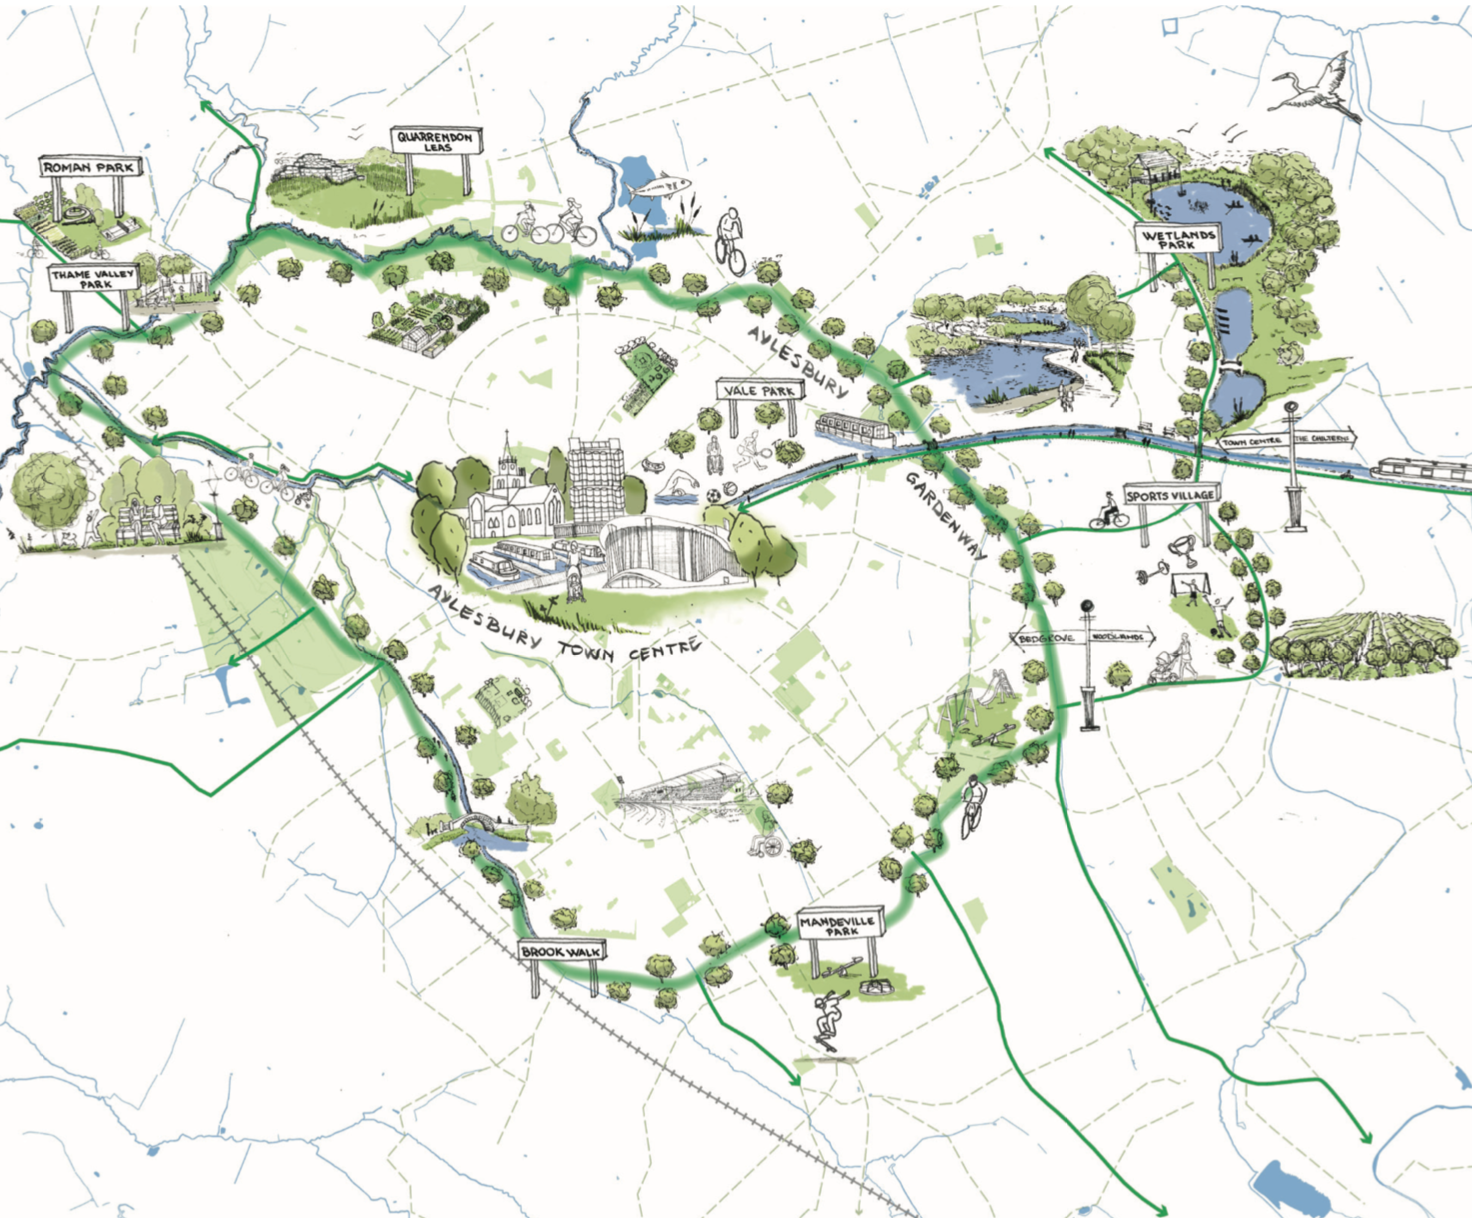 A hand drawn illustrative map showing the approximate Gardenway route and key green spaces and points of interest. These are labelled and include: Wetlands Park, Vale Park, Quarrendon Leas, Roman Park, Thame Valley Park, Brook Walk, Stoke Mandeville Park, Sports Village and Aylesbury town centre.